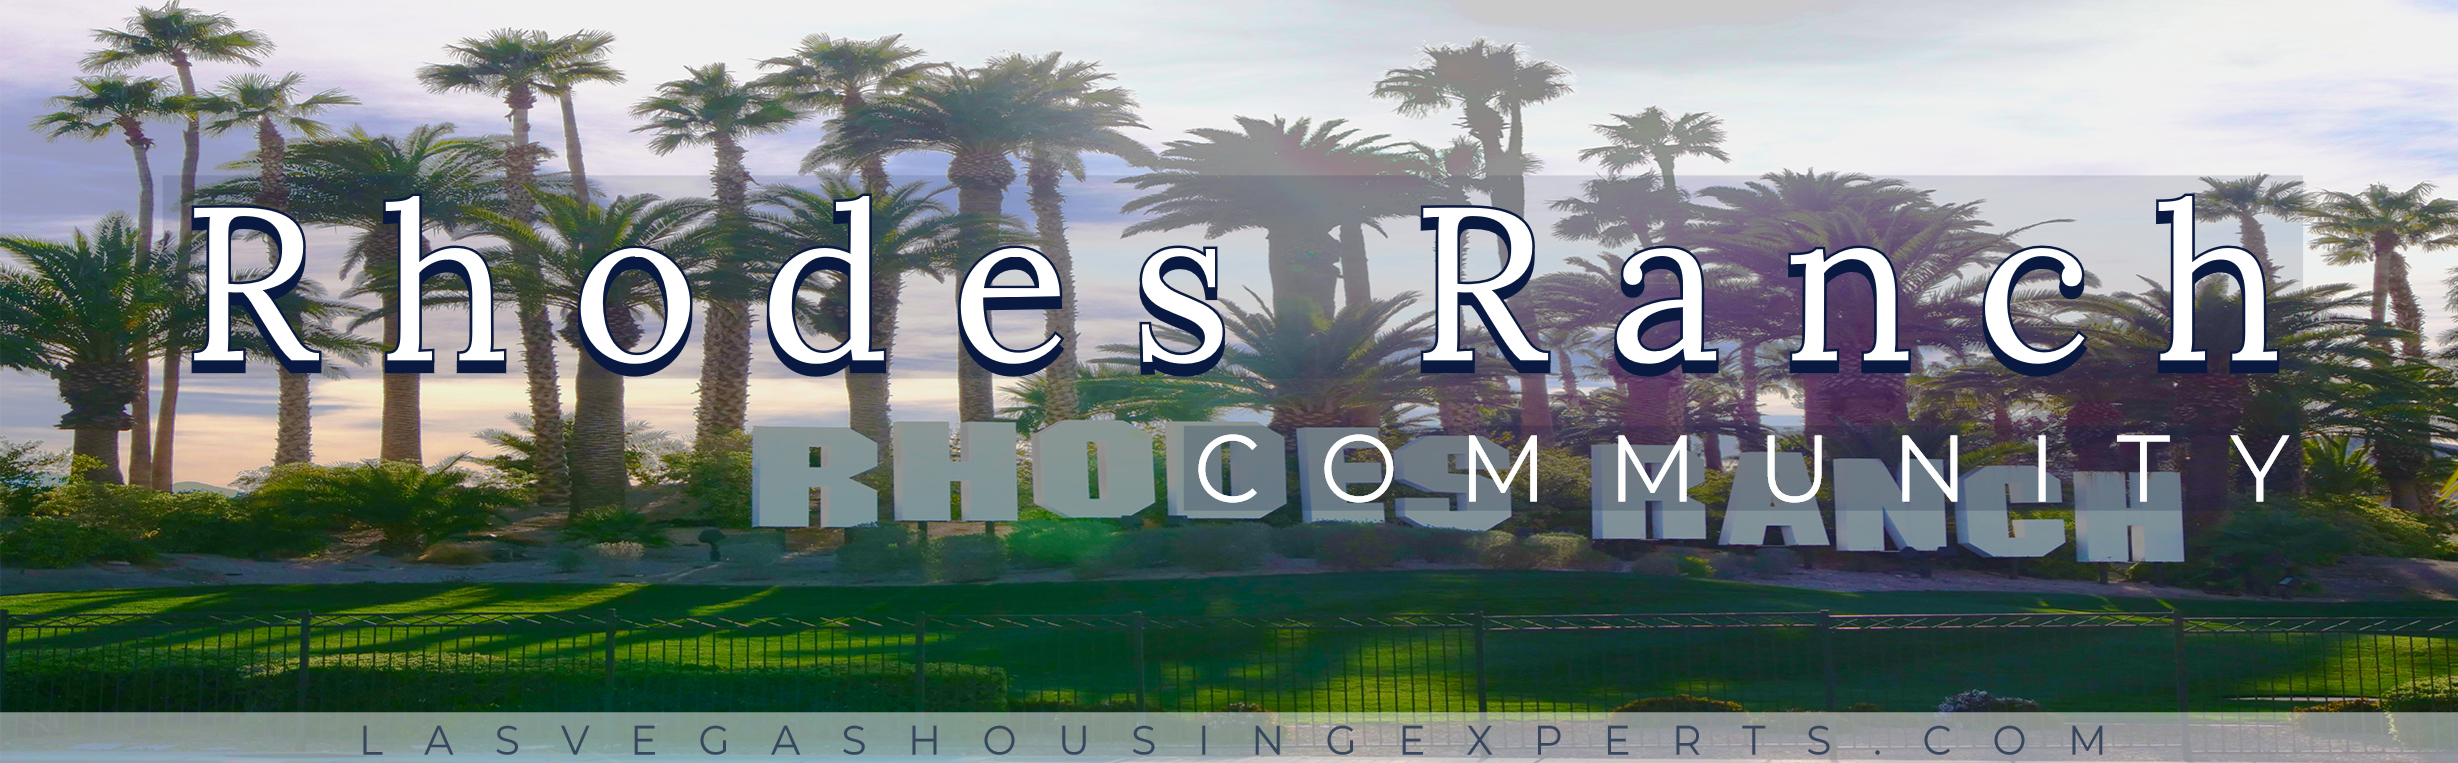 Rhodes Ranch Las Vegas Housing Experts